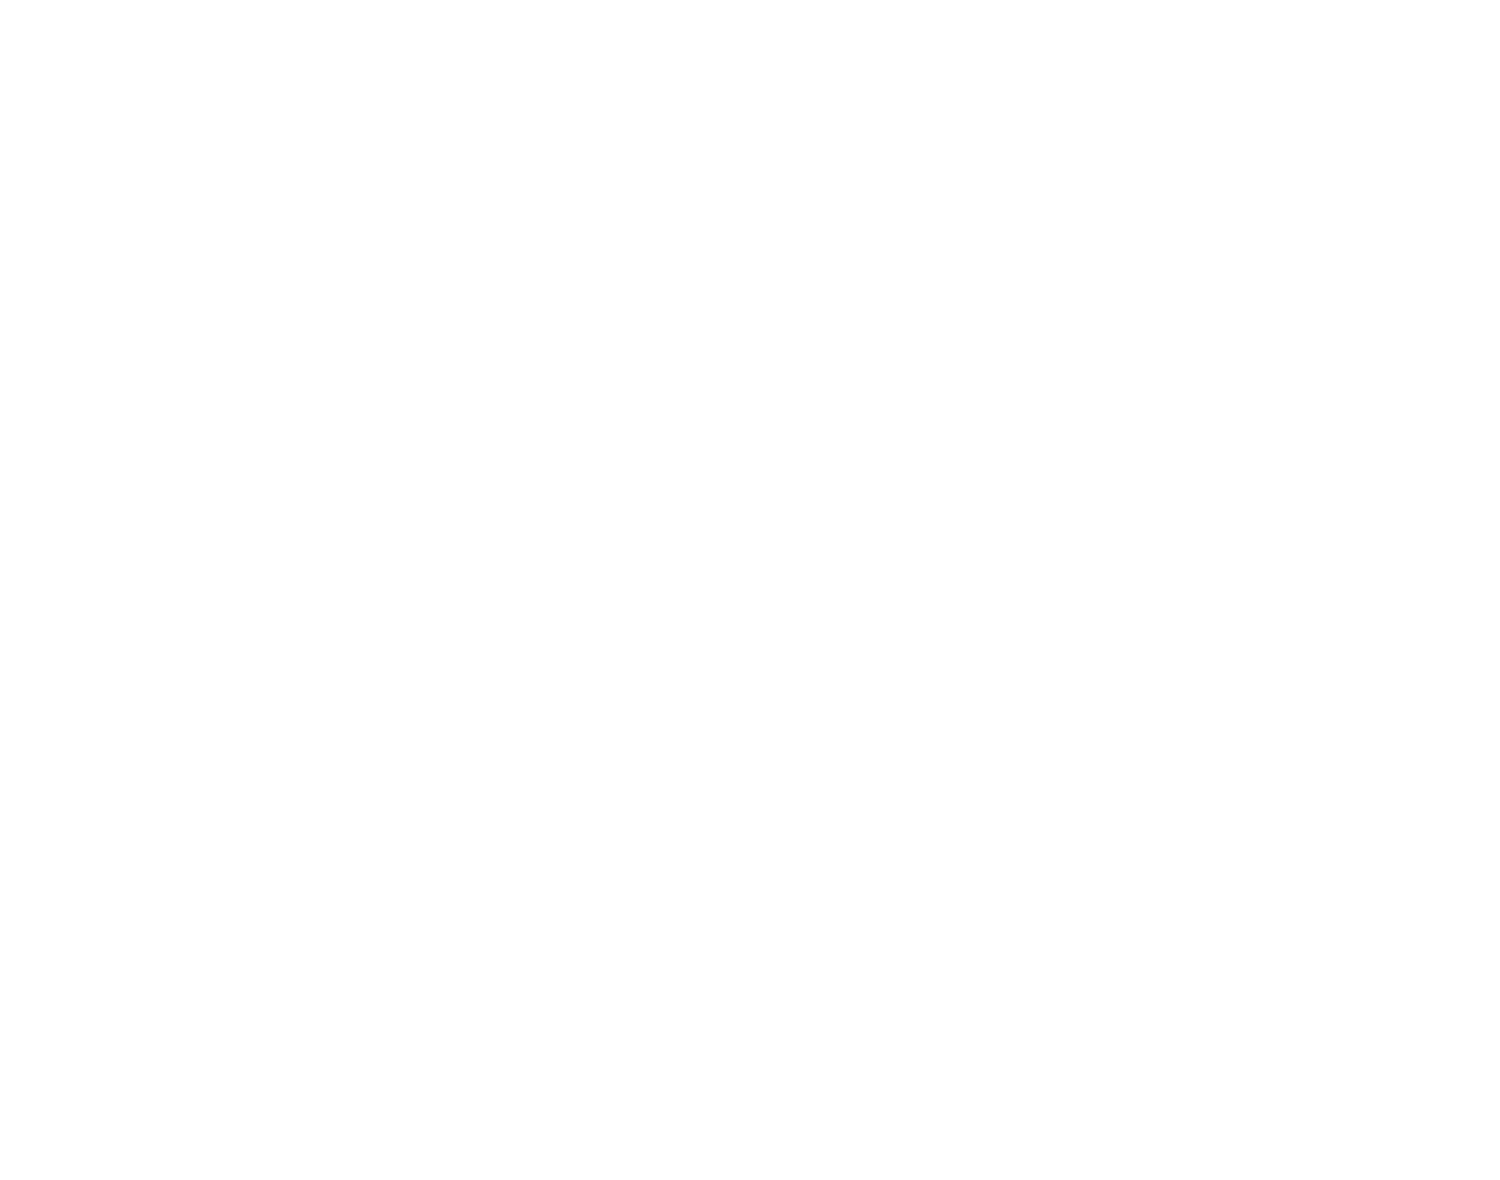 MACK WEDDING DESIGN